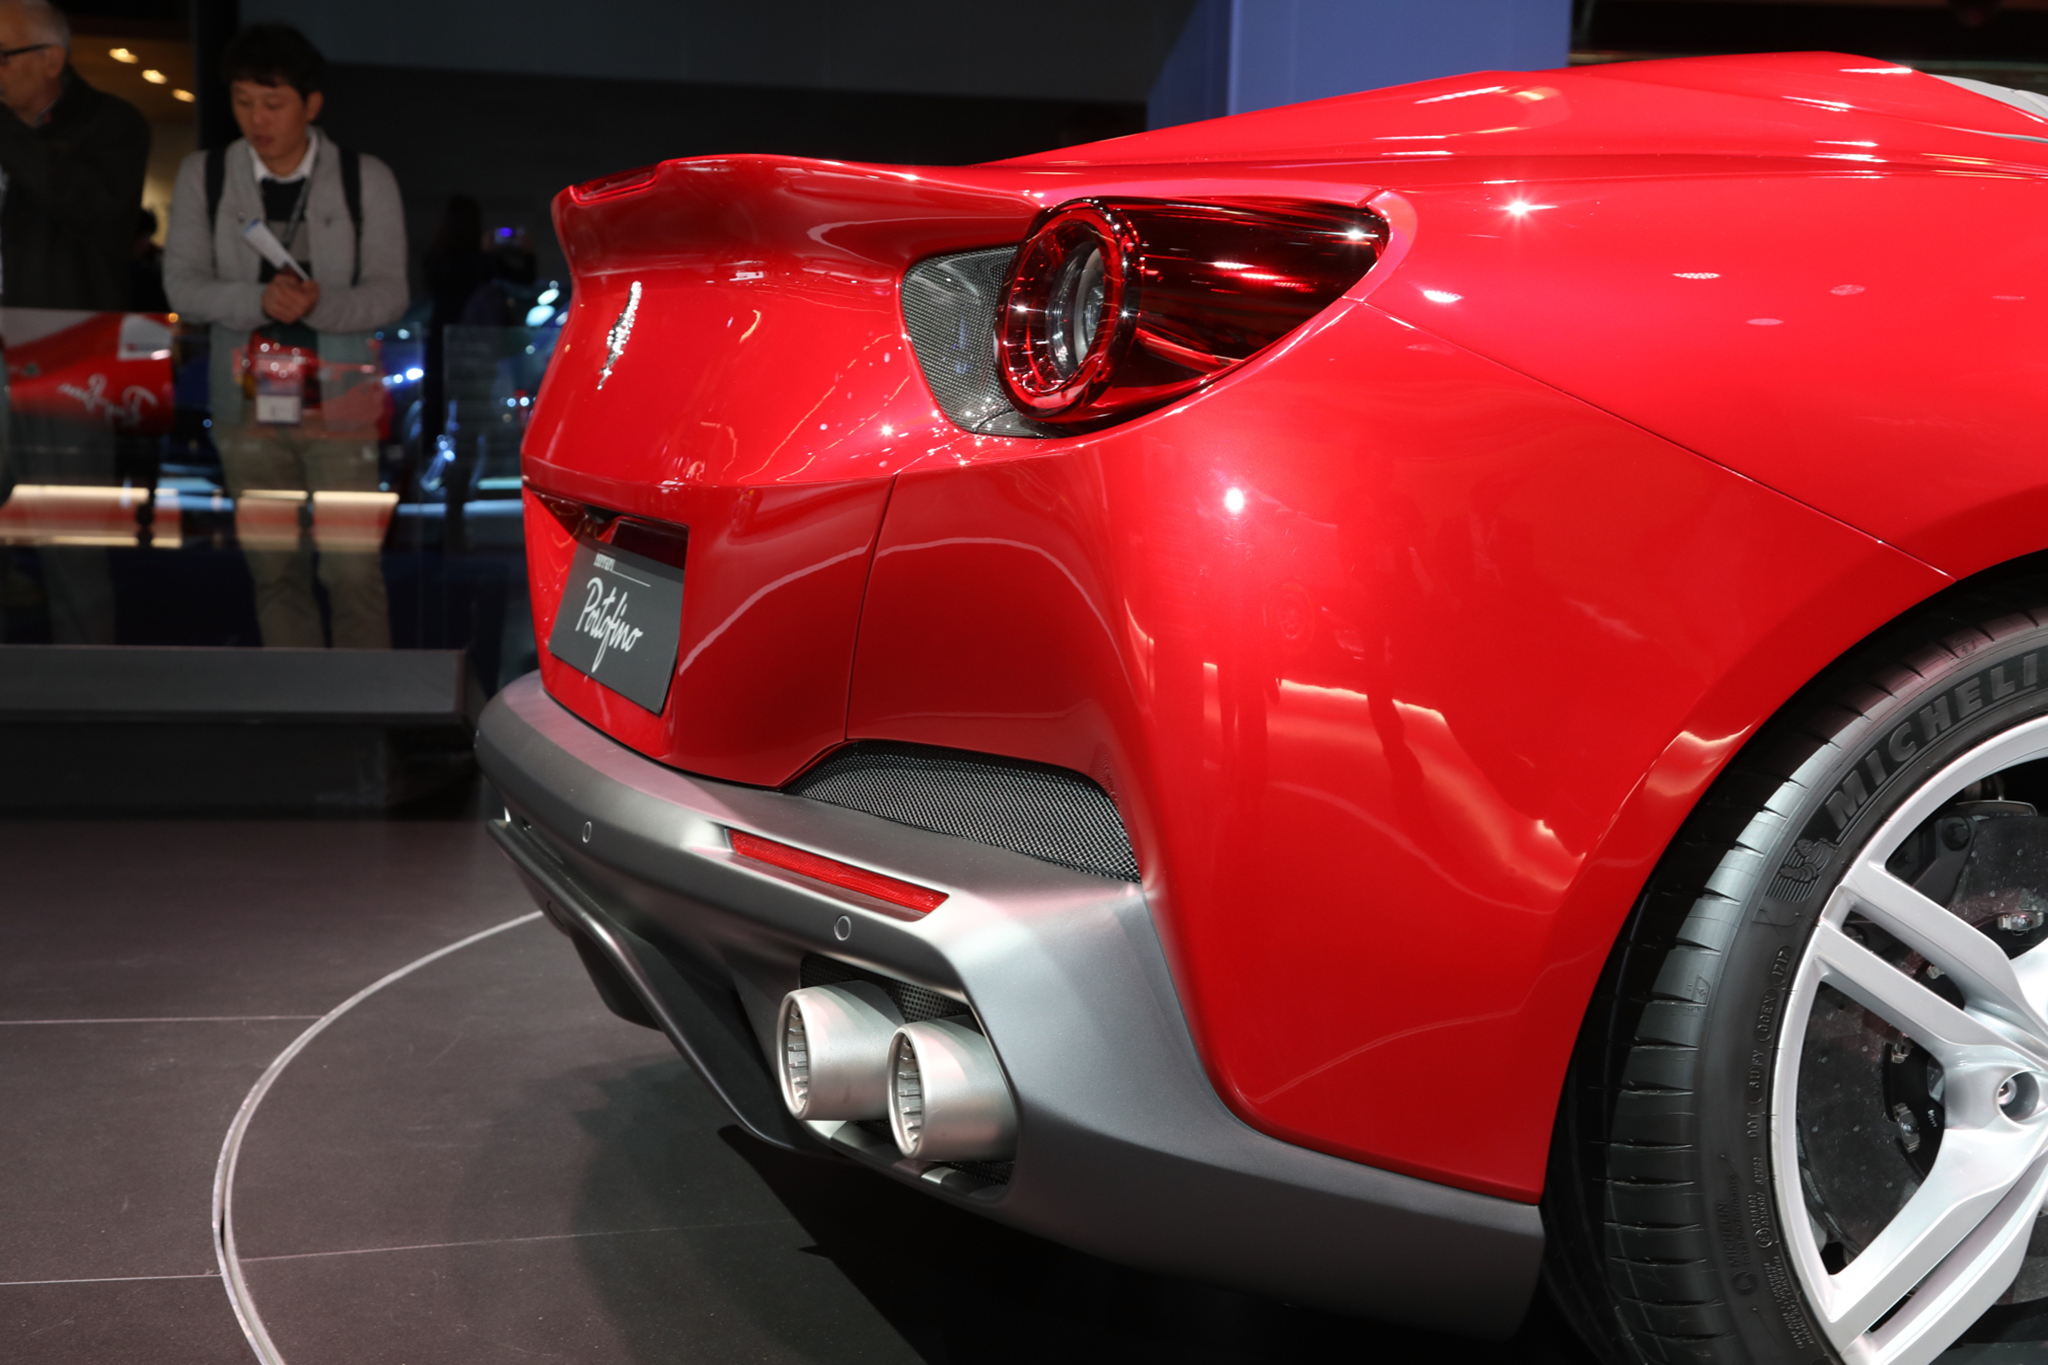 2019-Ferrari-Portofino-tail-light.jpg